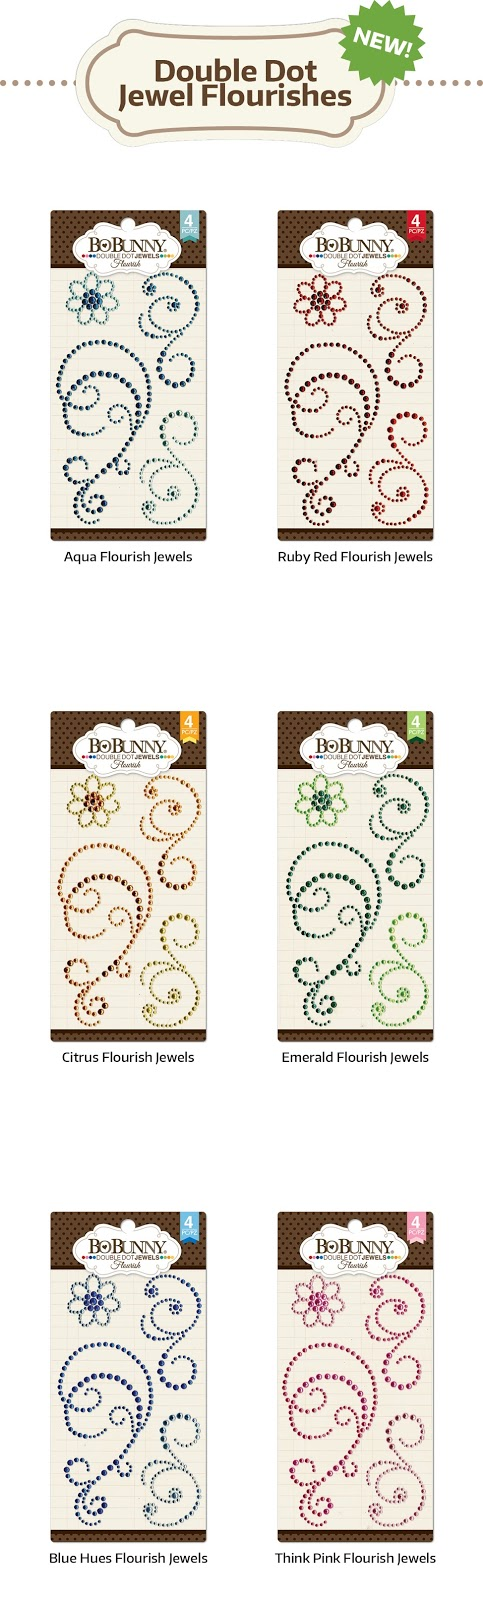 Bling Flourish Jewels Citrus NEW Double Dot Designs Collection BoBunny